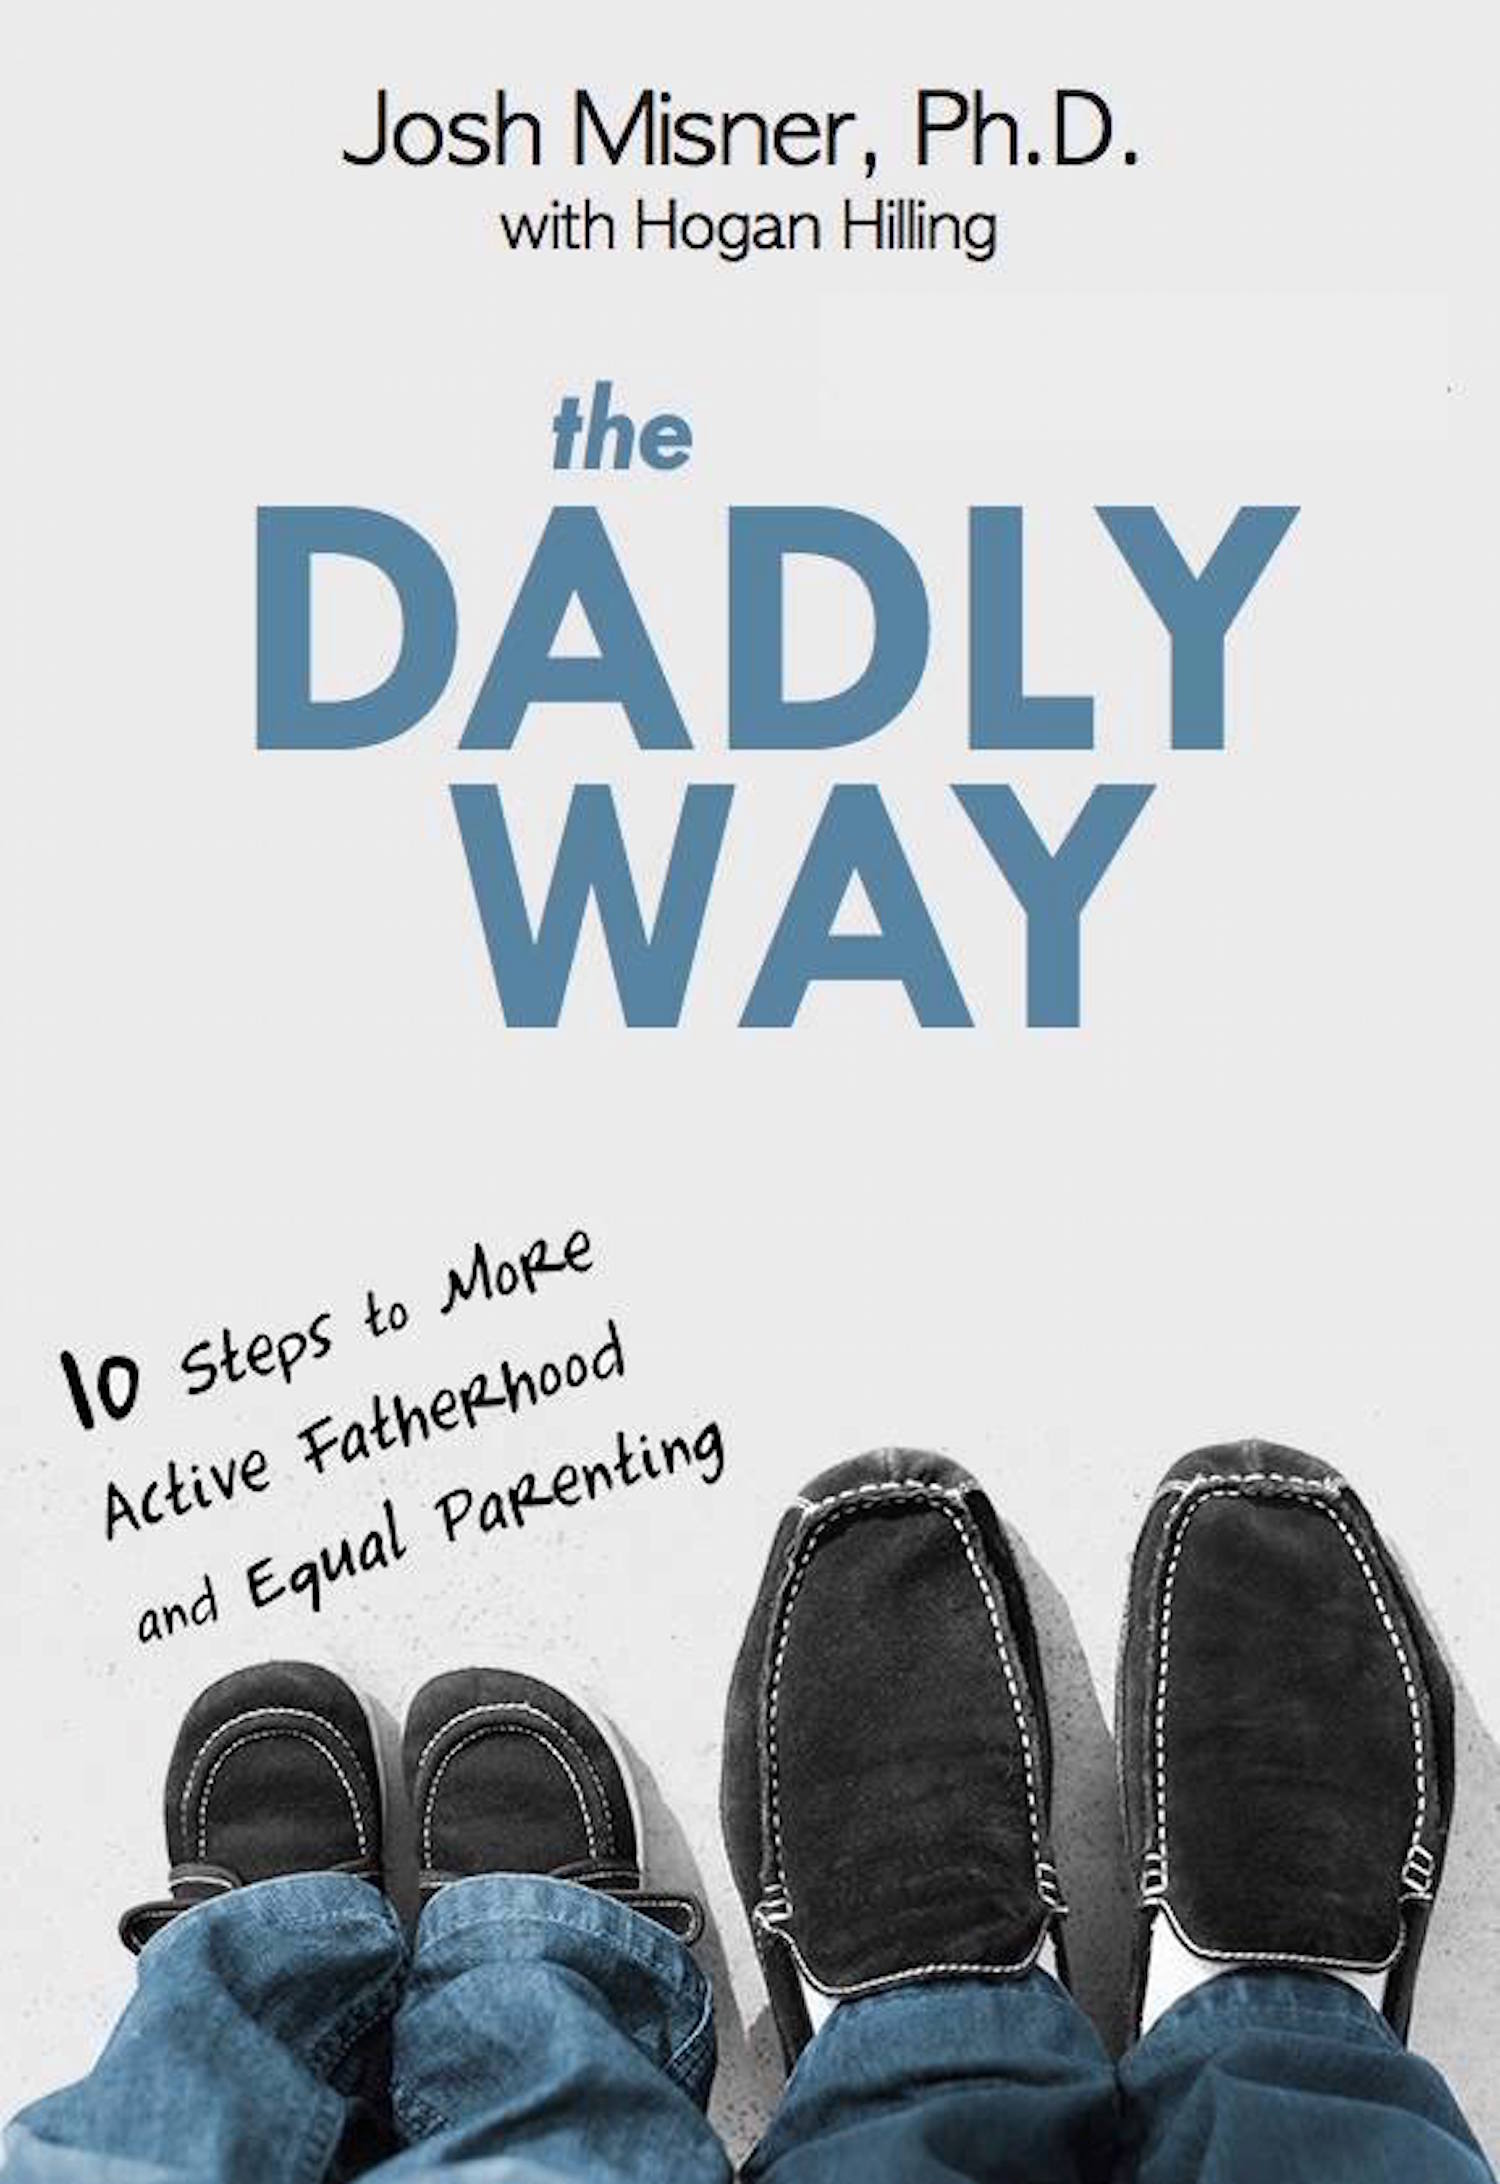 The Dadly Way